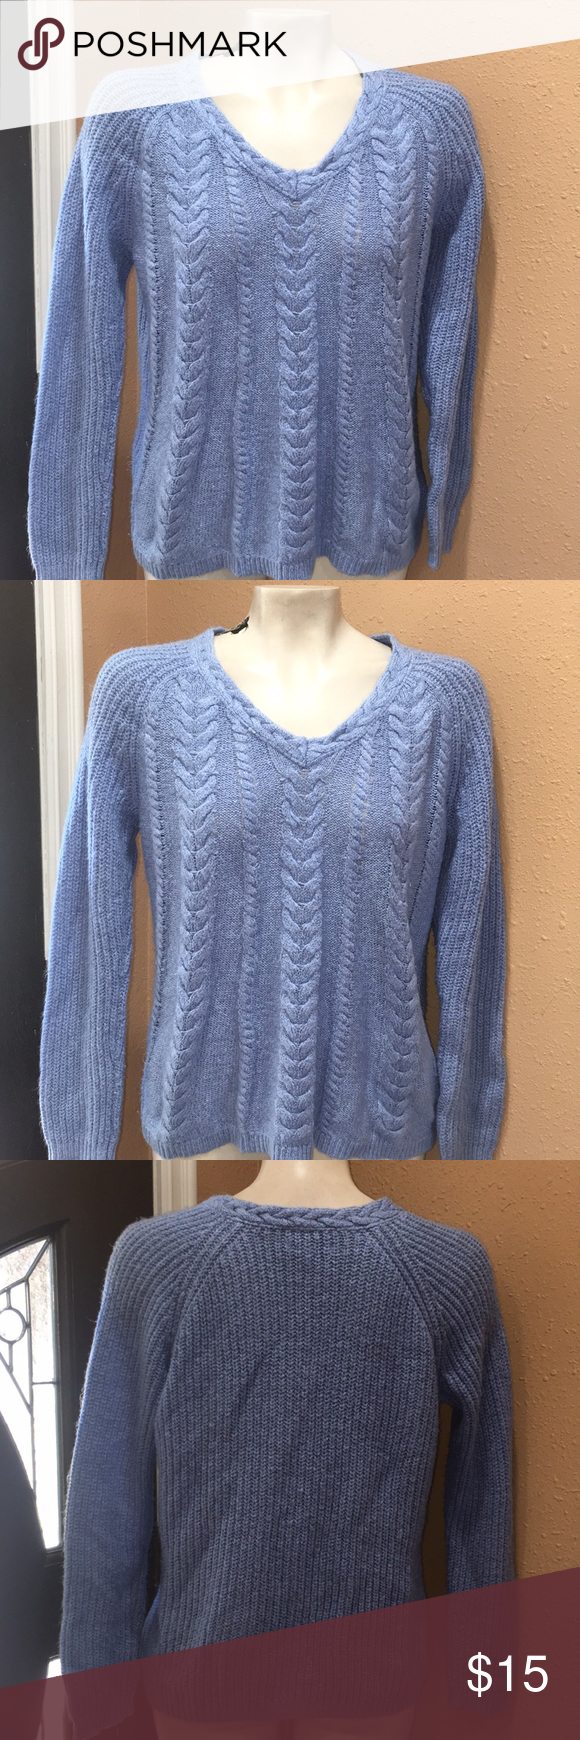 Sonoma Knit Sweater | Knitted sweaters, Sweaters, Clothes design